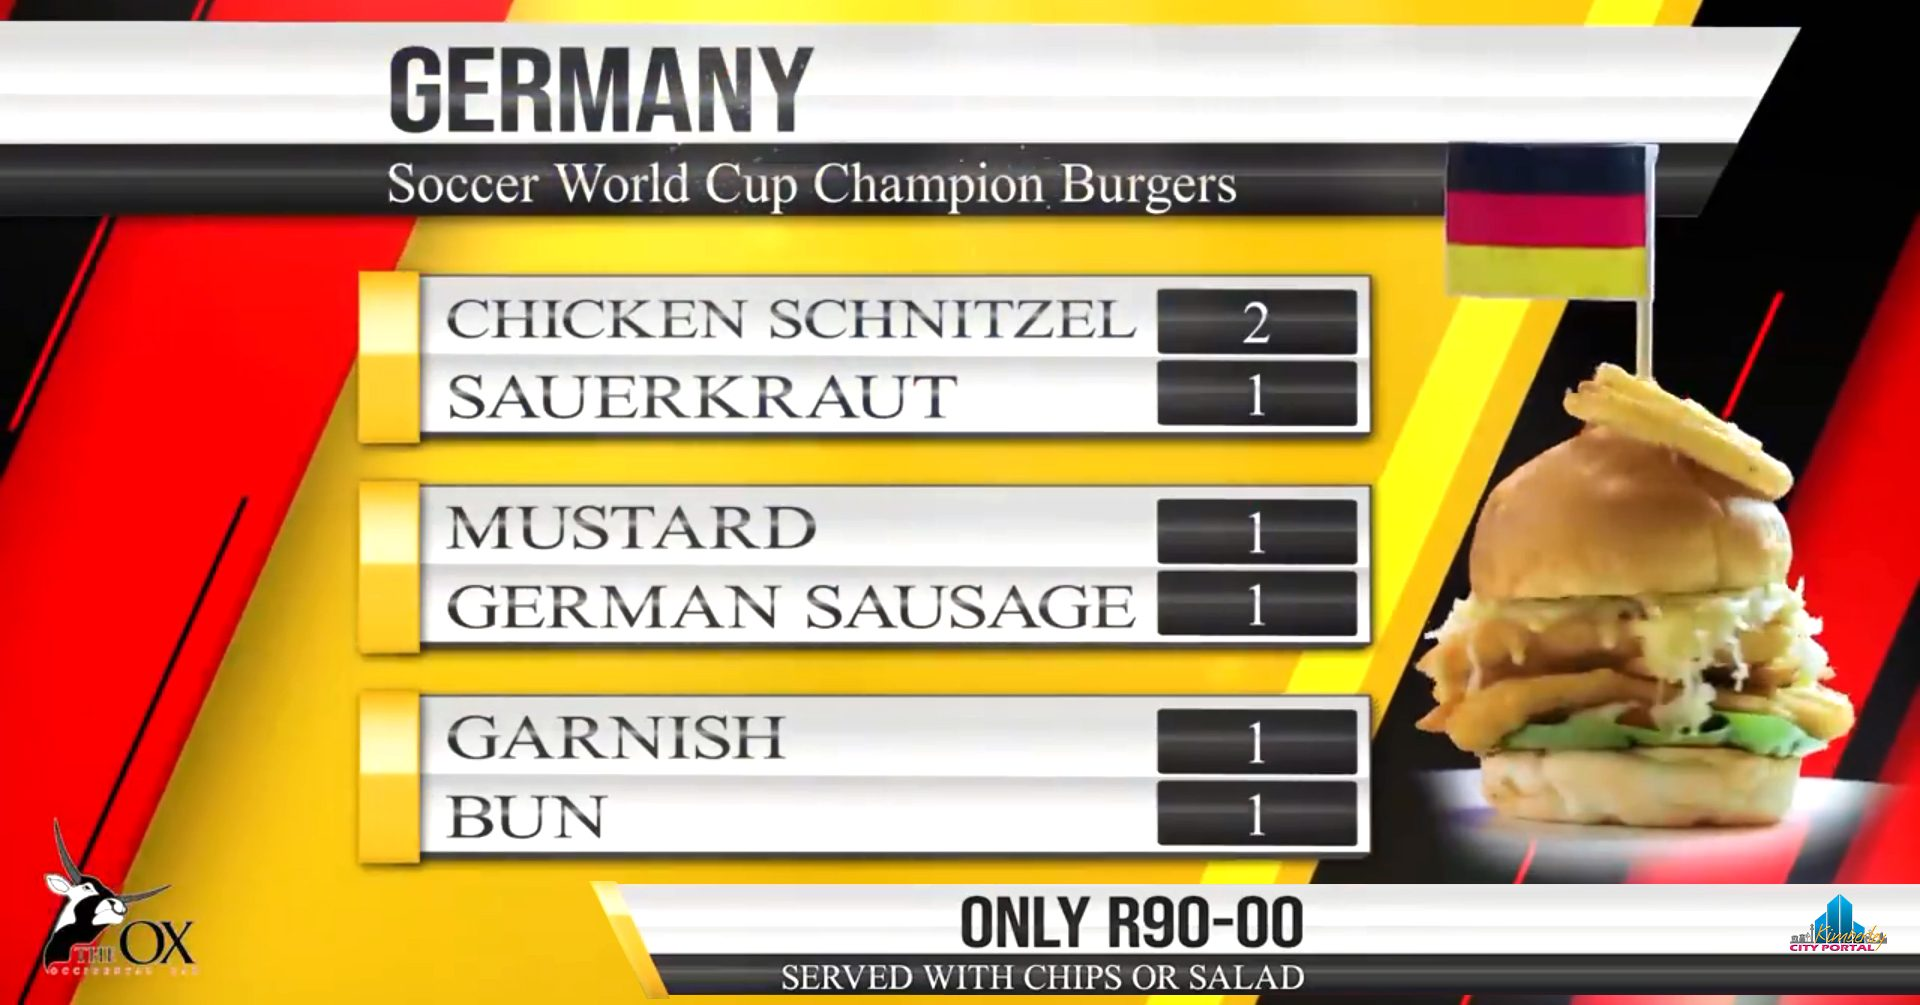 The_OX-Fifa_Burger_Special-Germany